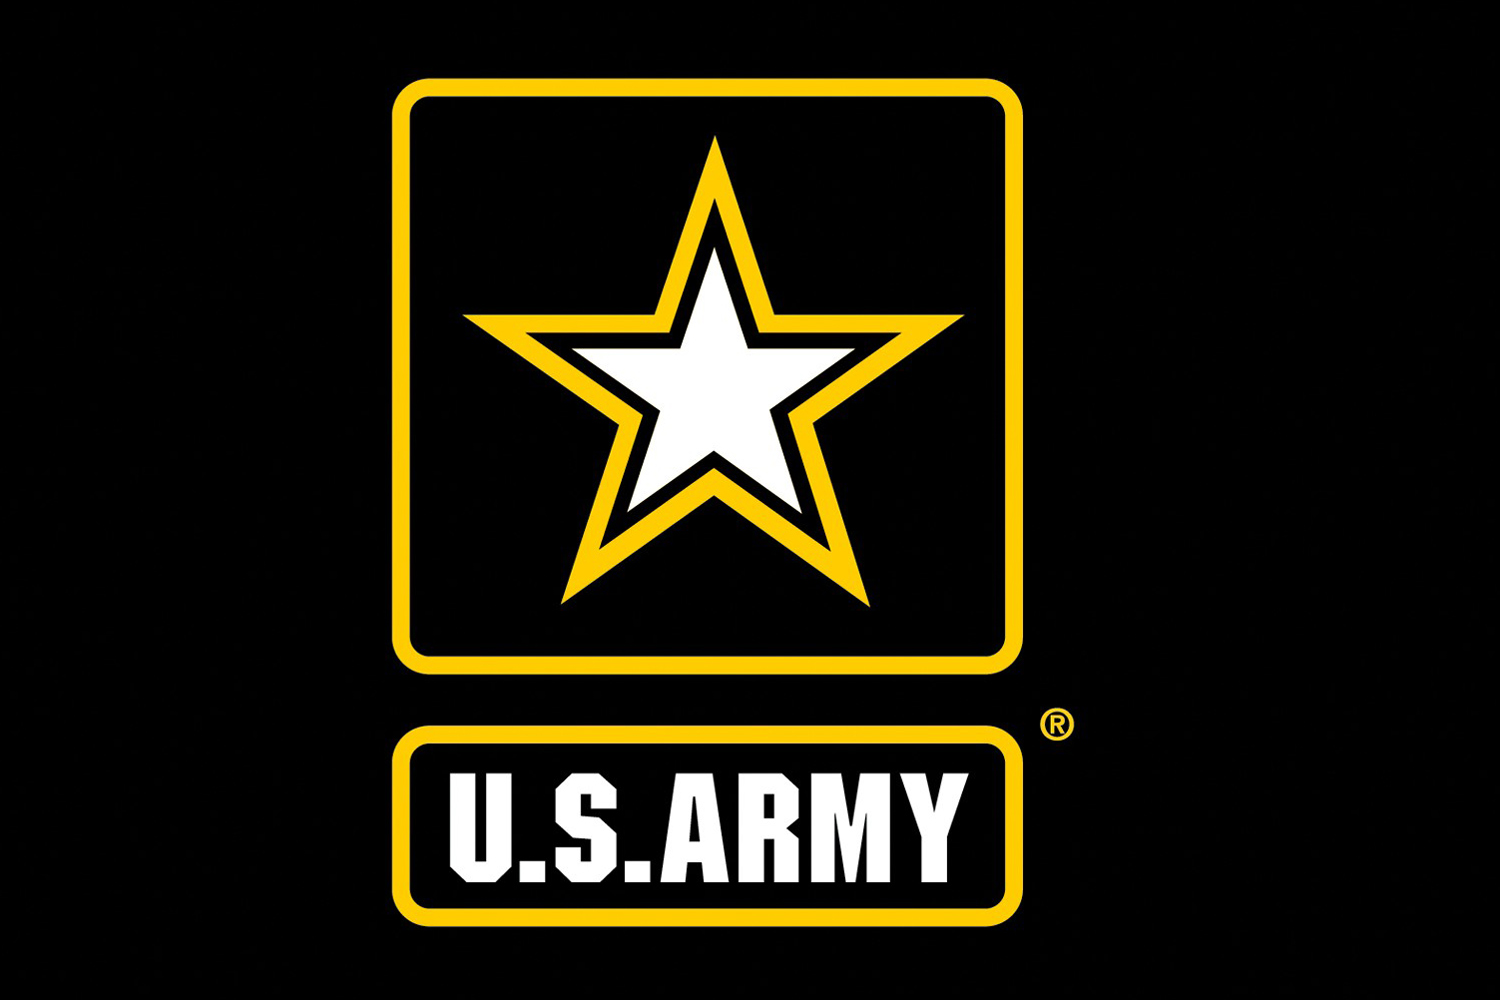 Army Company Symbols And Graphics Topsimages